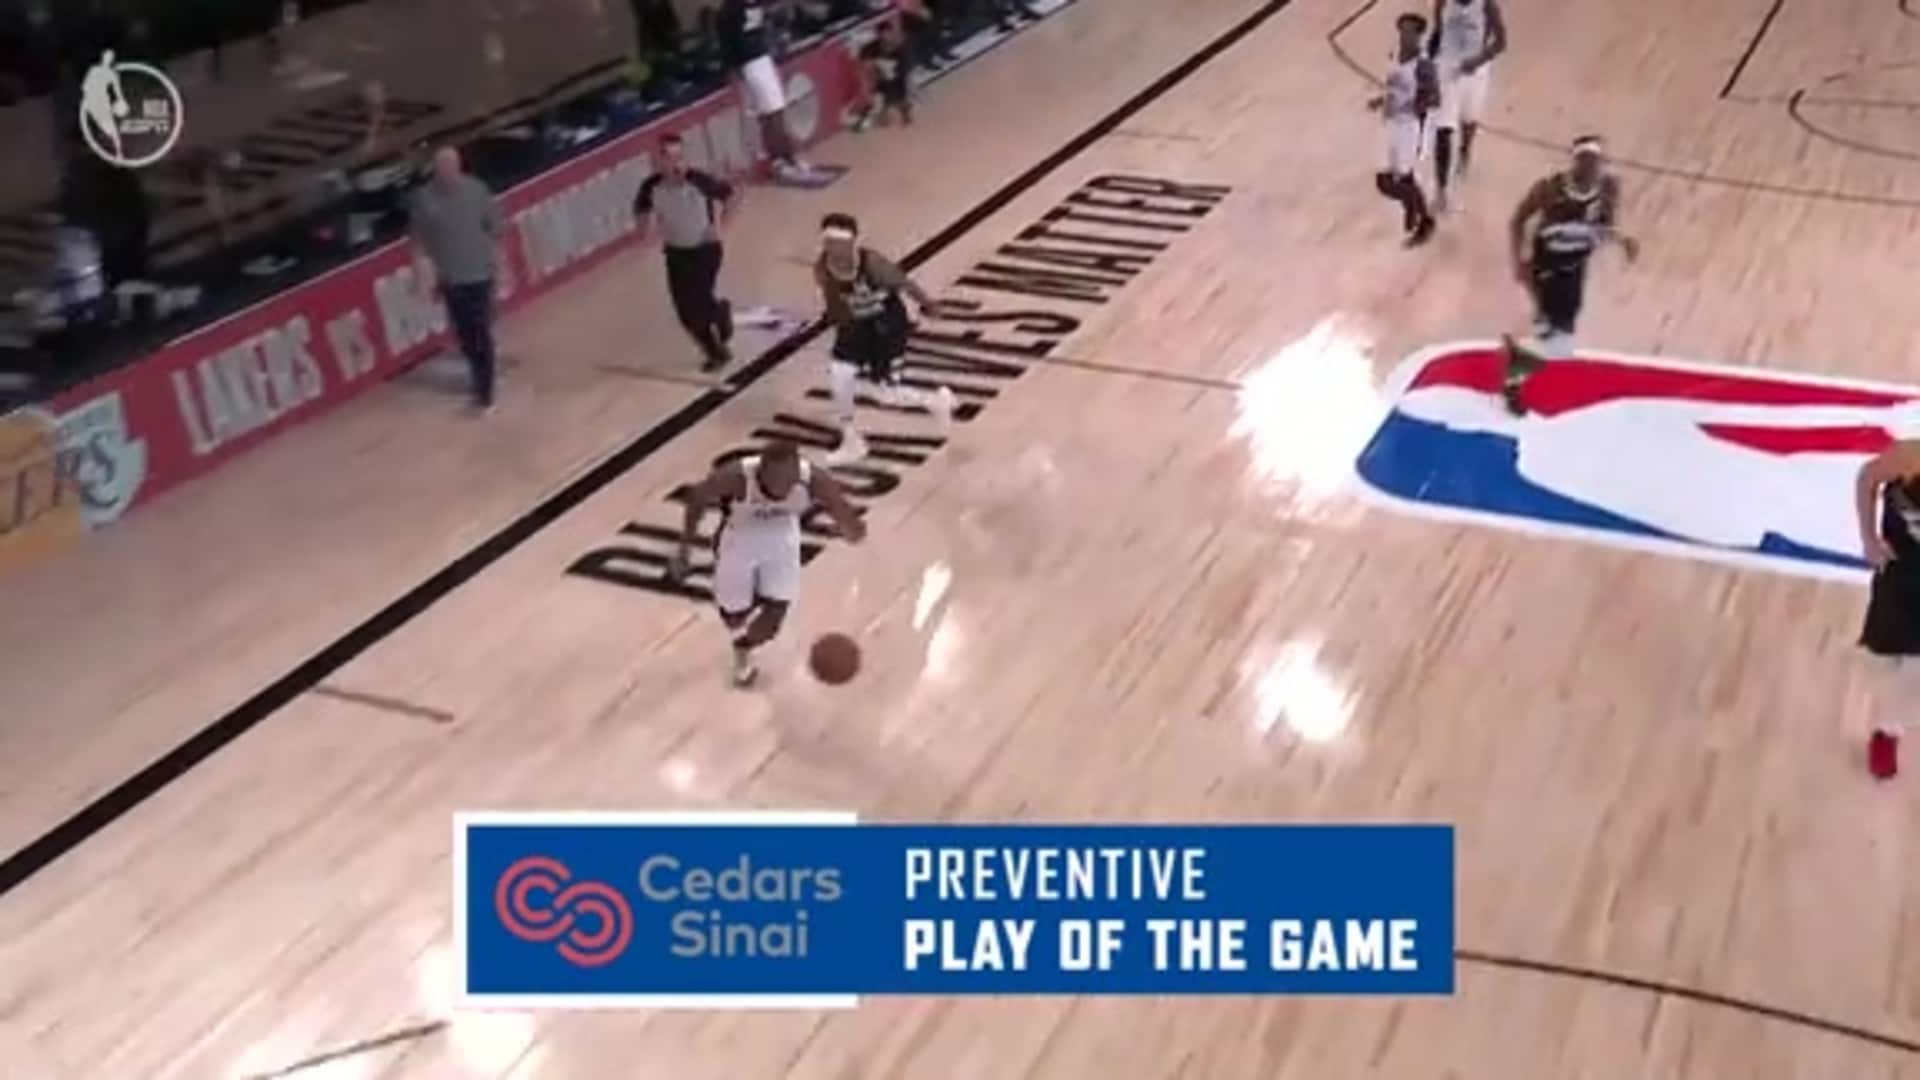 Cedars-Sinai Preventive Play of the Game | Clippers vs. Nuggets (09.09.20)